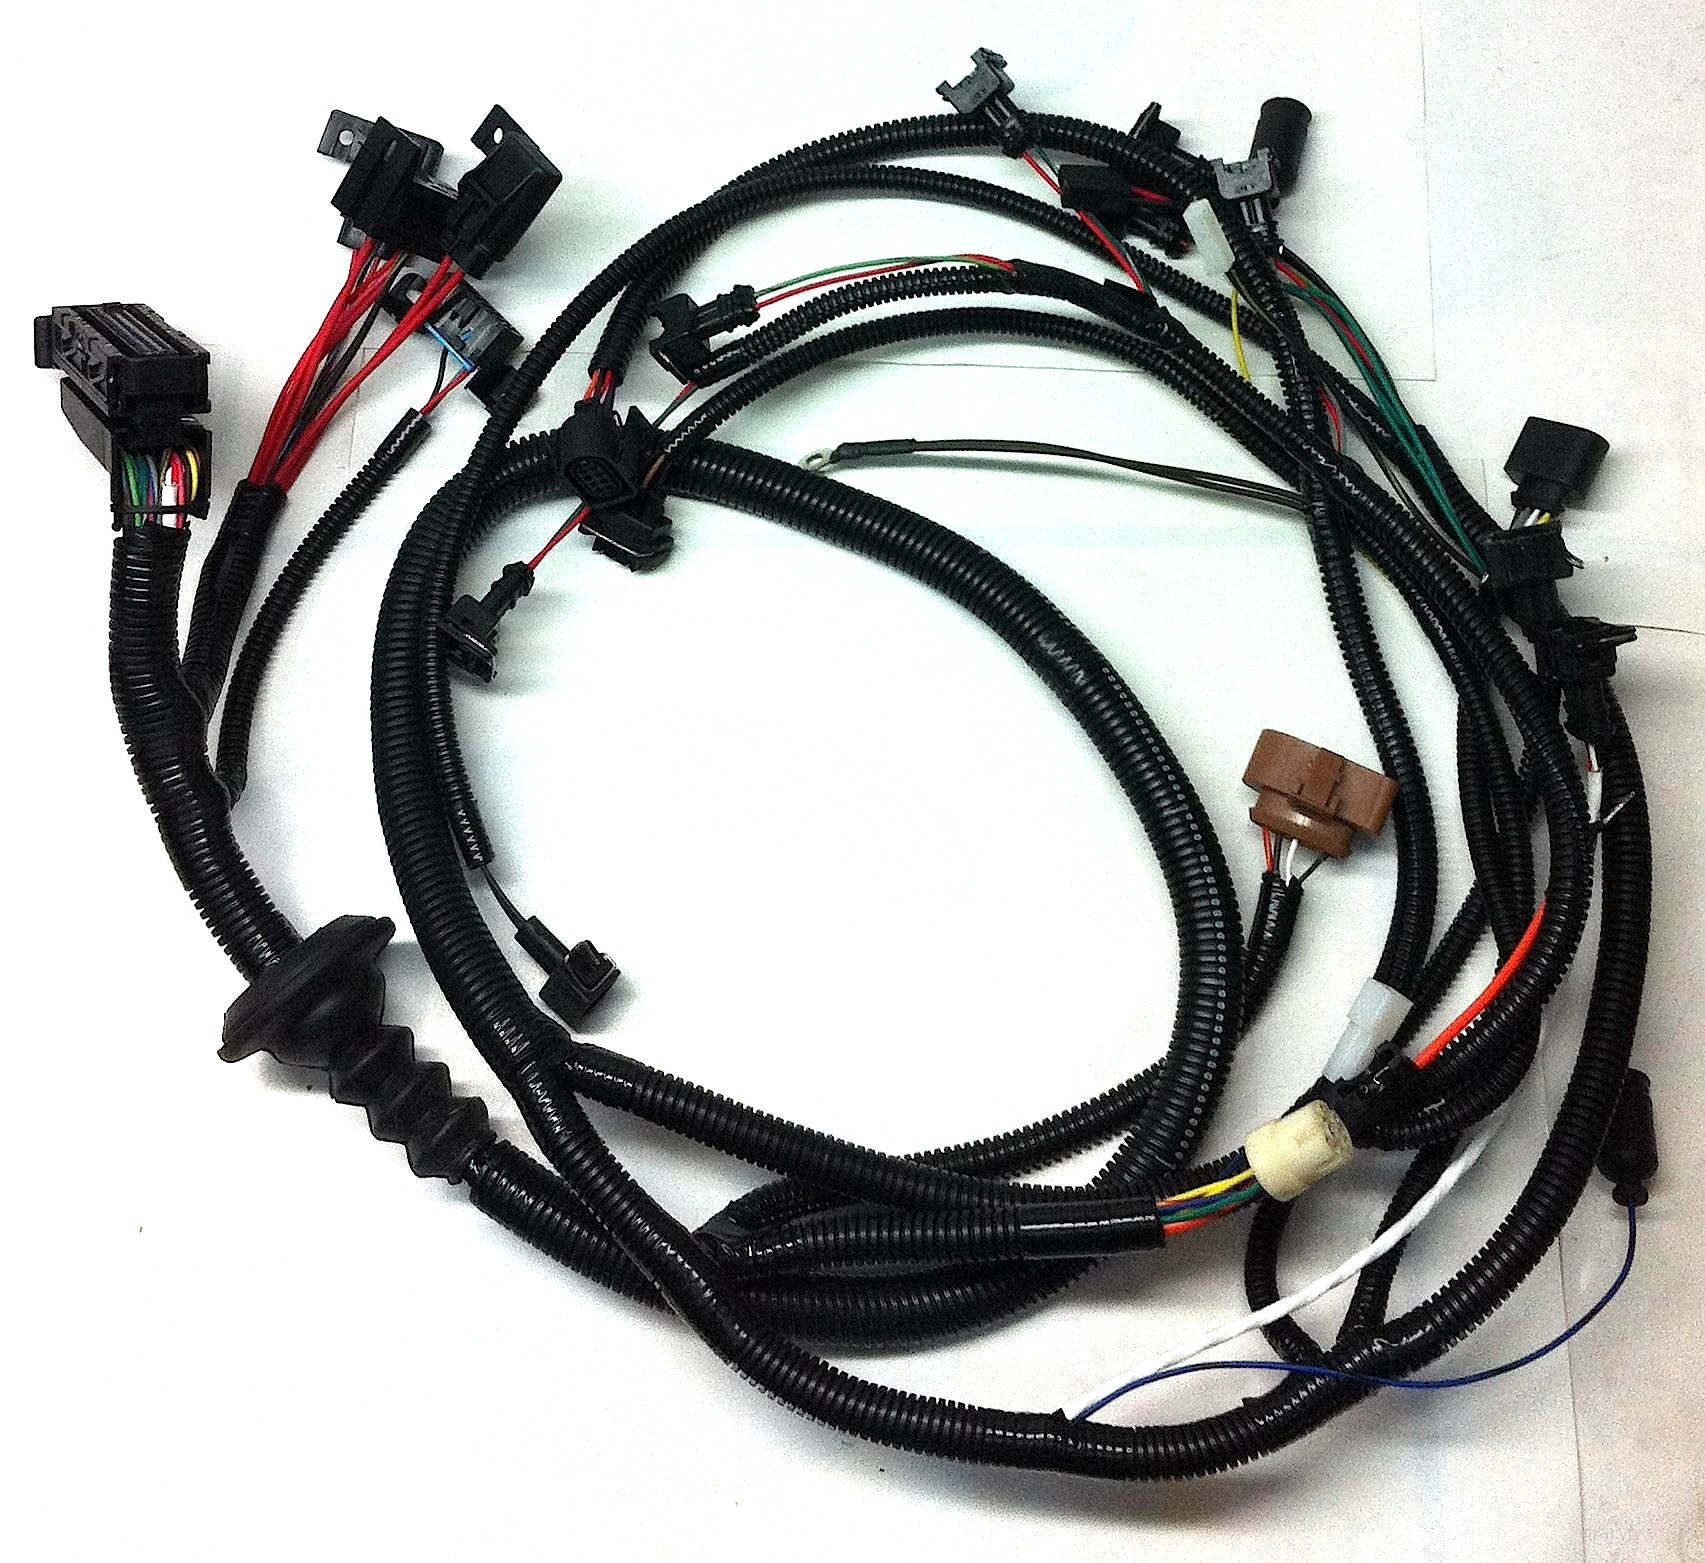 Wiring_Harness_2LR 2lr tiico conversion wiring harness foreign auto & supply, inc automotive wiring harnesses at eliteediting.co